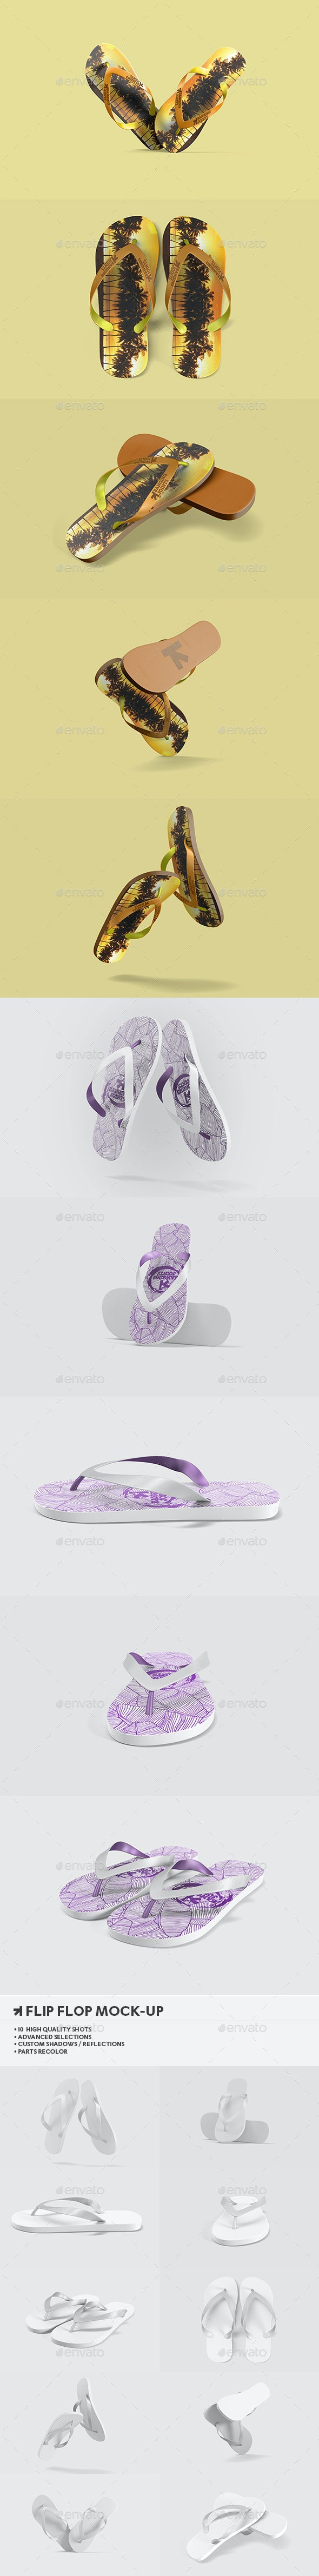 Flip Flops / Sandals Mock-Up - Miscellaneous Apparel